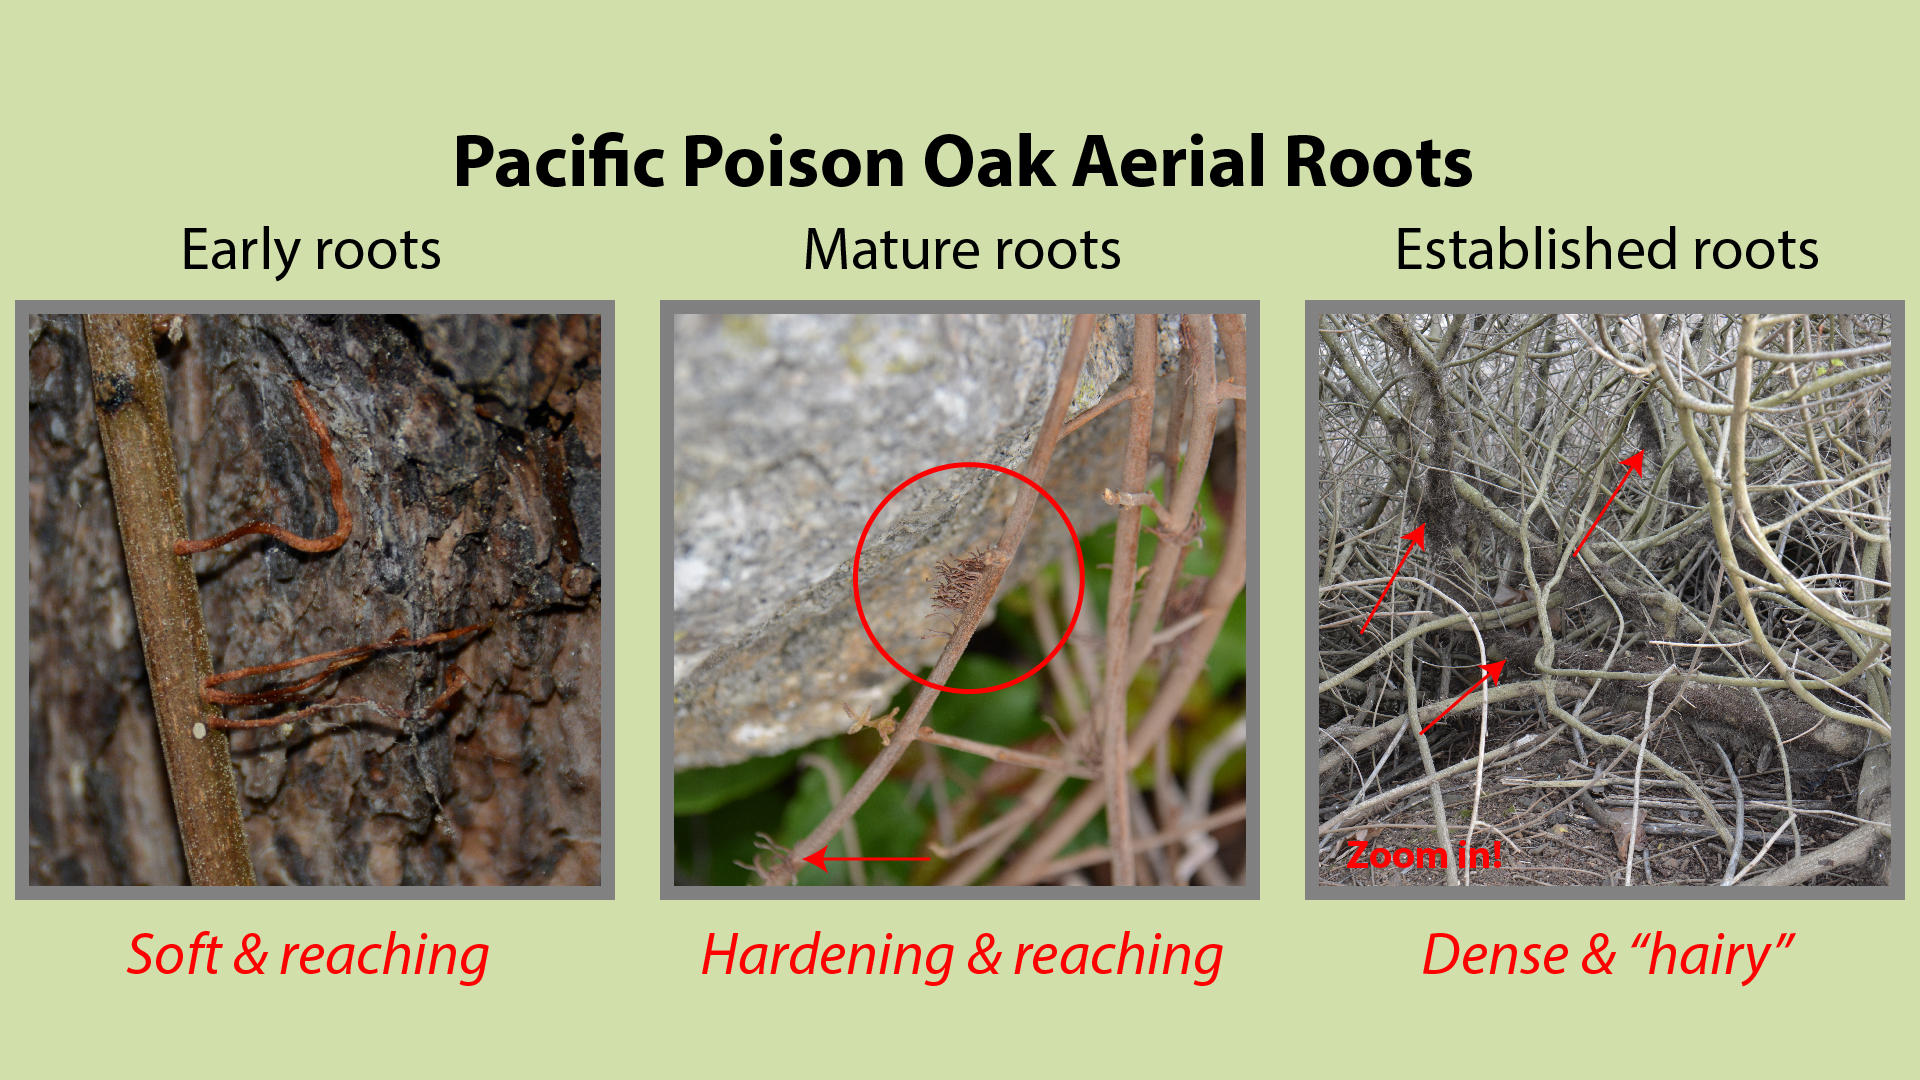 Pacific Poison Oak Aerial Roots